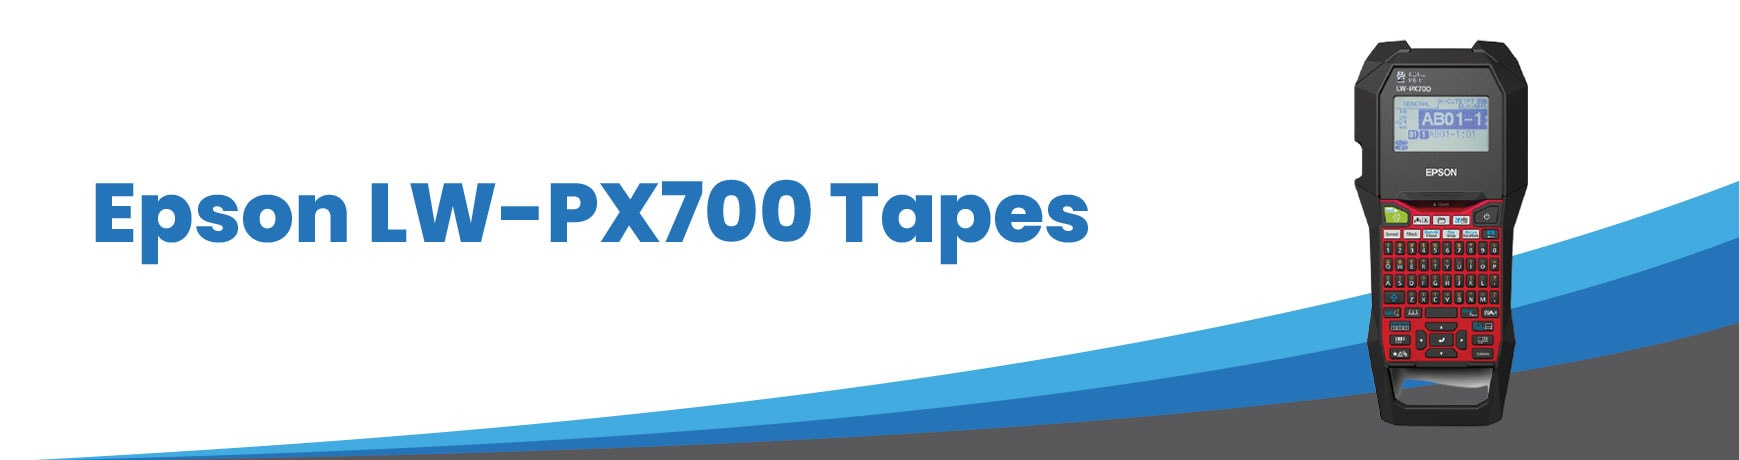 Epson LW-PX700 Tapes